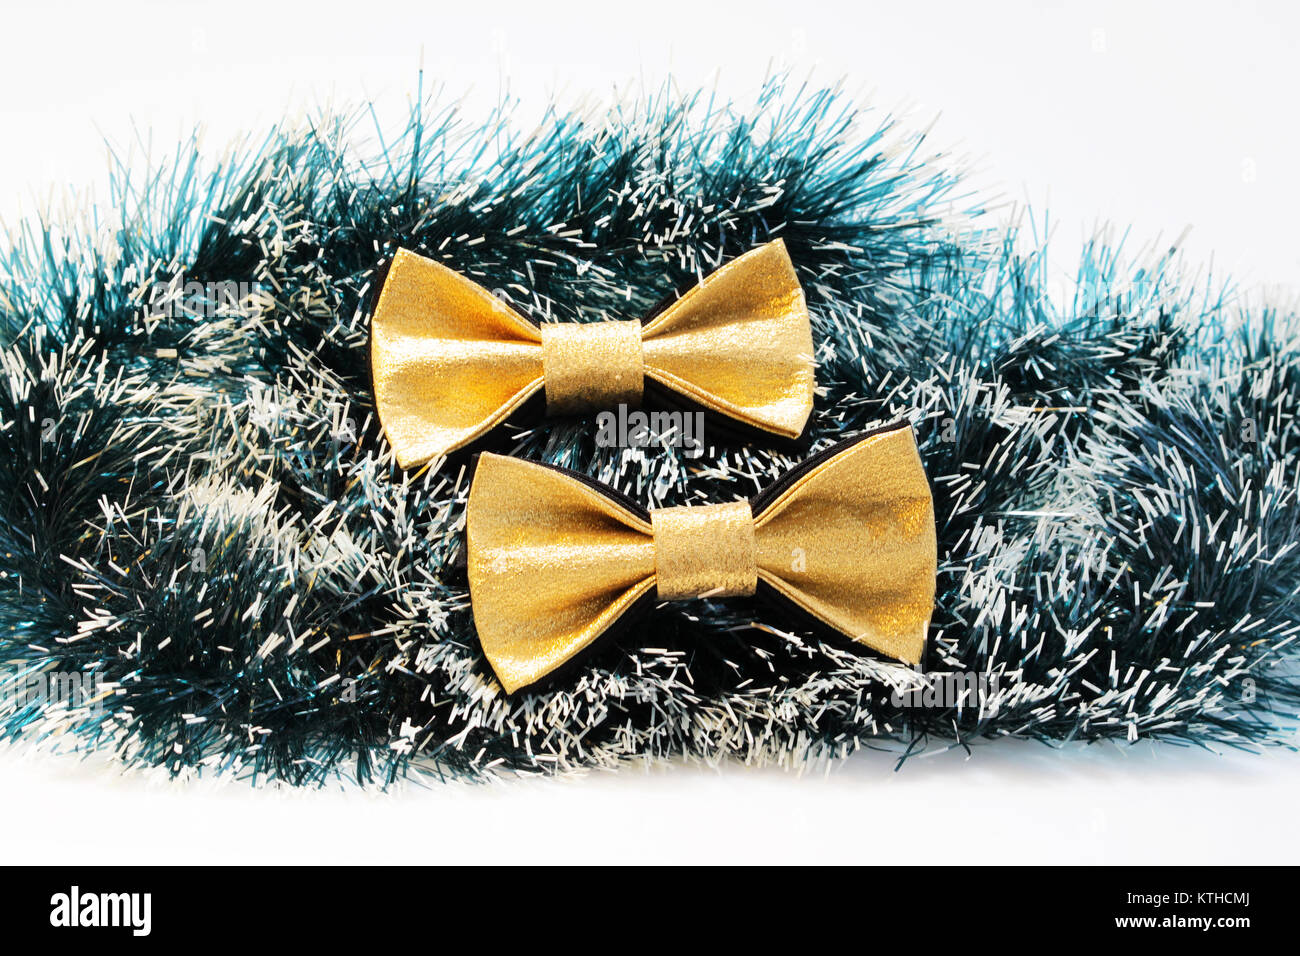 two festive gold butterfly bow tie against a background of green Christmas tree tinsel - Stock Image